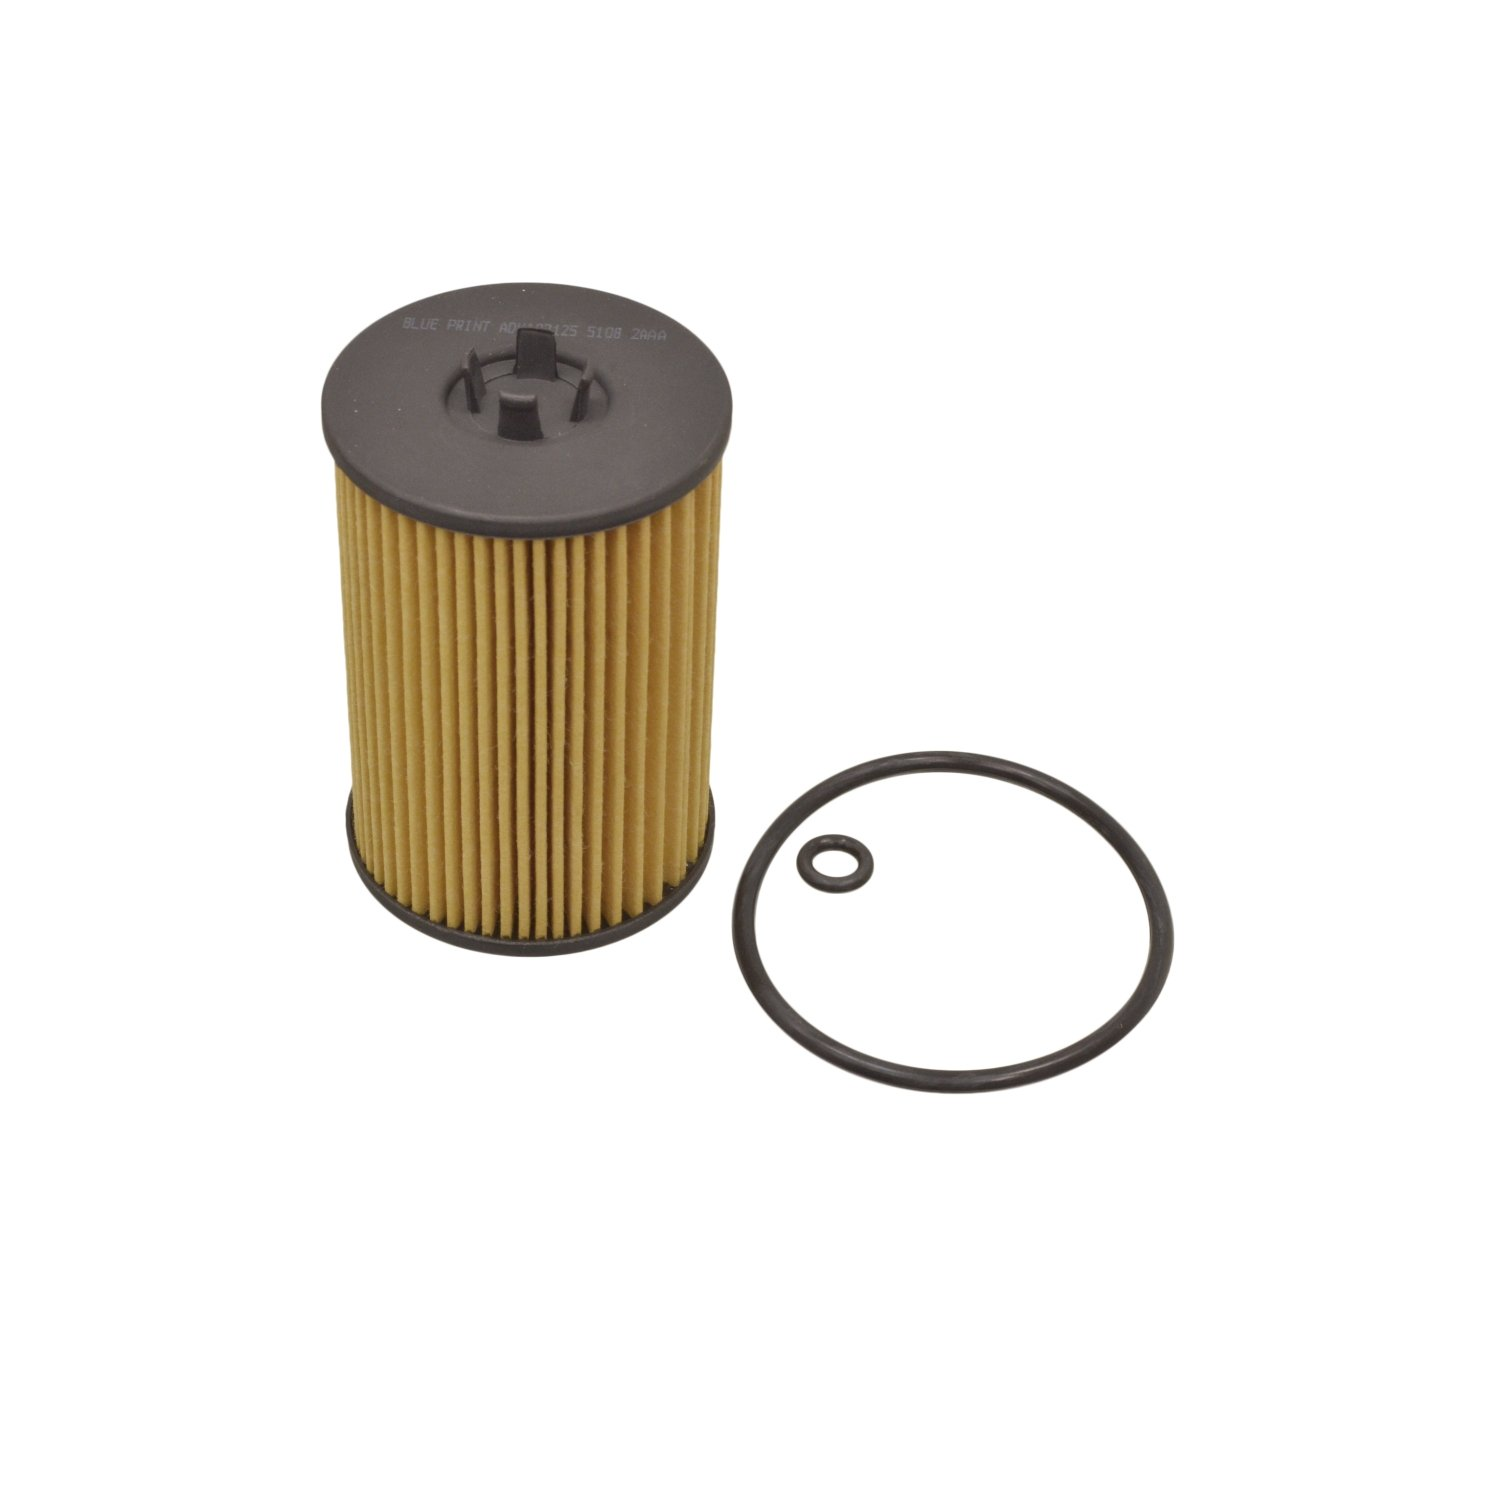 pack of one Blue Print ADV182125 Oil Filter with seal rings